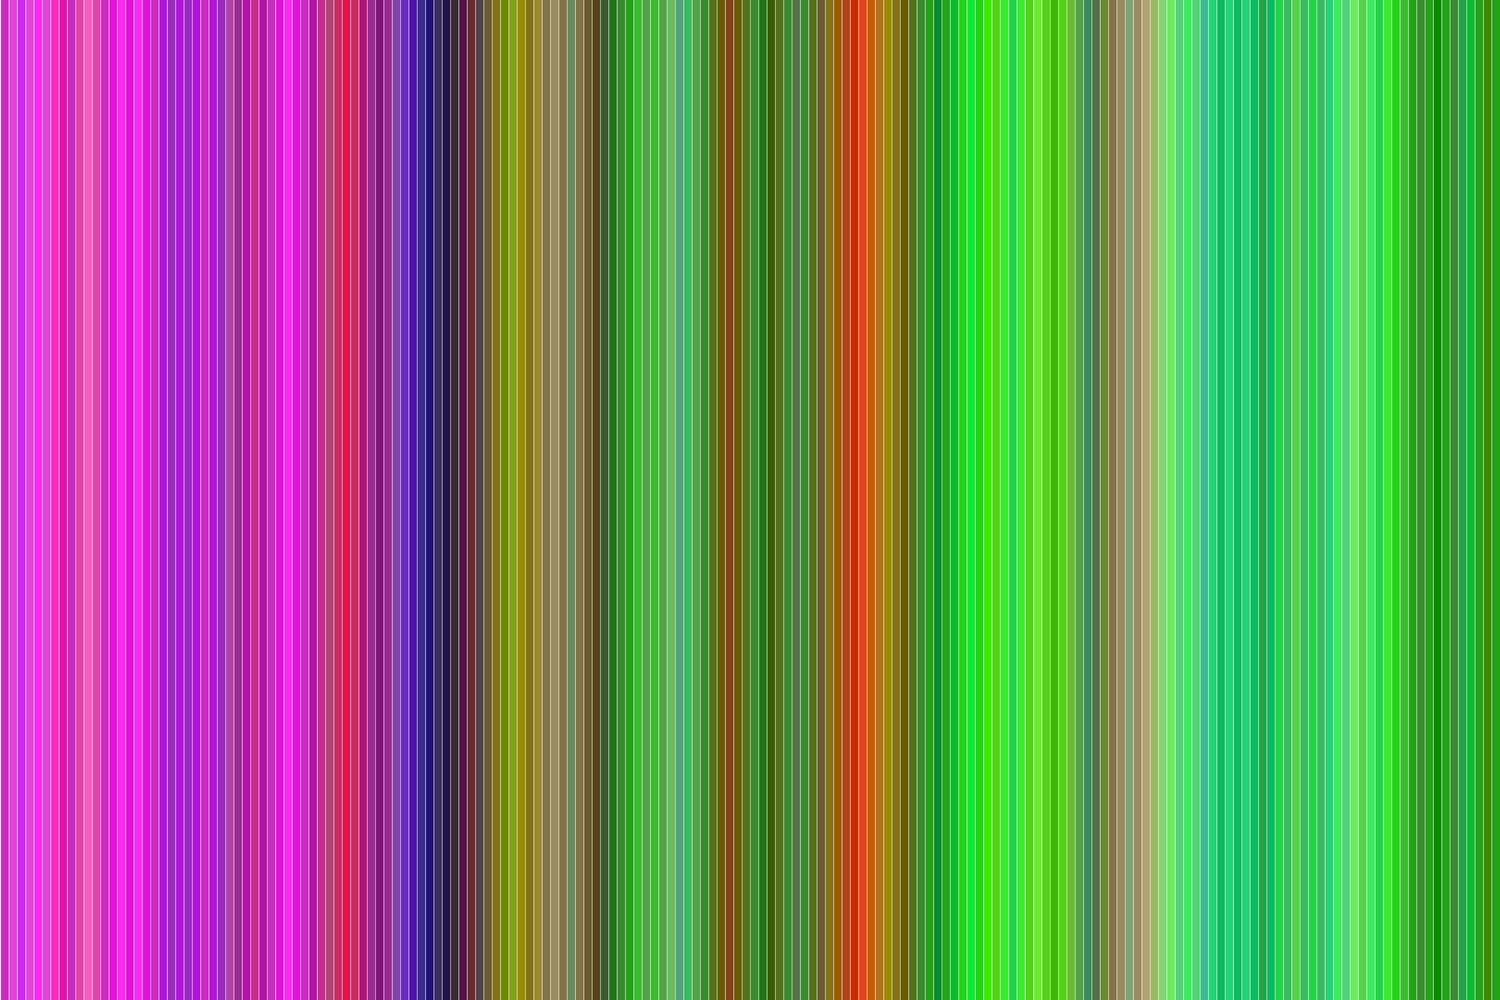 50 colorful stripe backgrounds (AI, EPS, JPG 5000x5000) example image 3